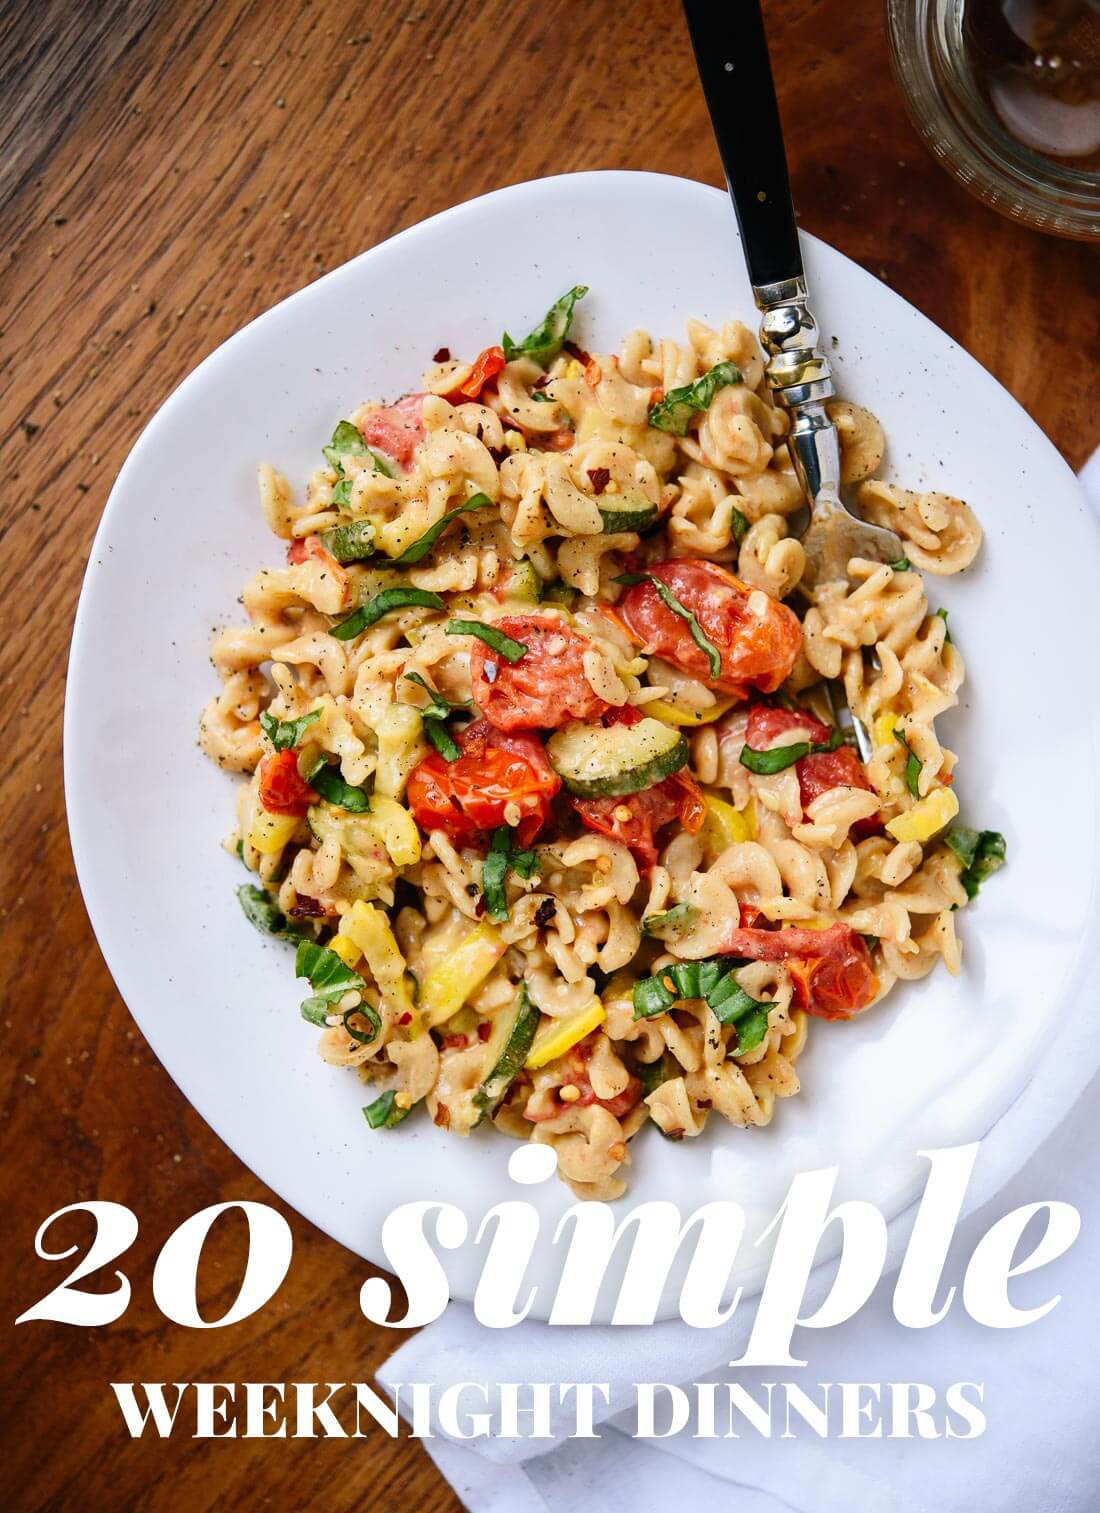 Summer Weeknight Dinners  20 Simple Ve arian Dinner Recipes Cookie and Kate